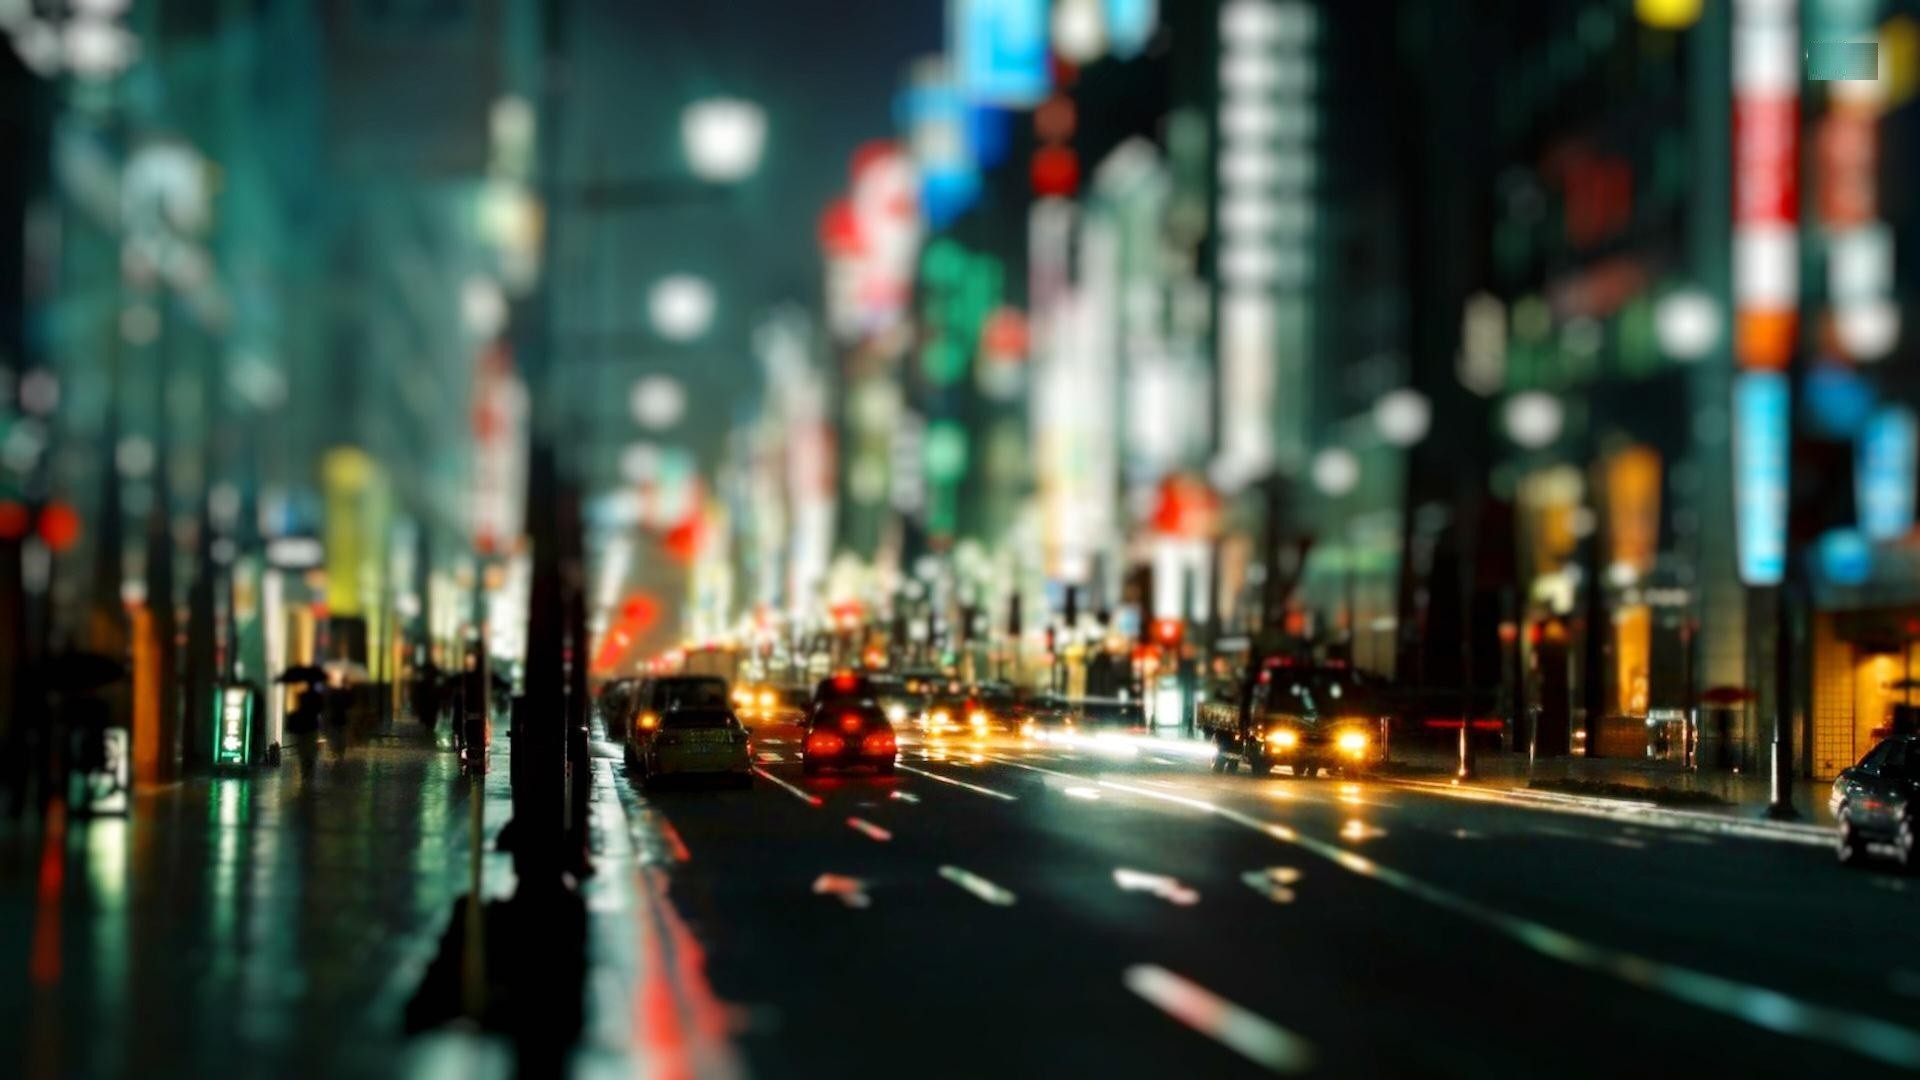 Night City Wallpapers Wide | Landscape Wallpapers | Pinterest | Night city,  Wallpaper and City wallpaper